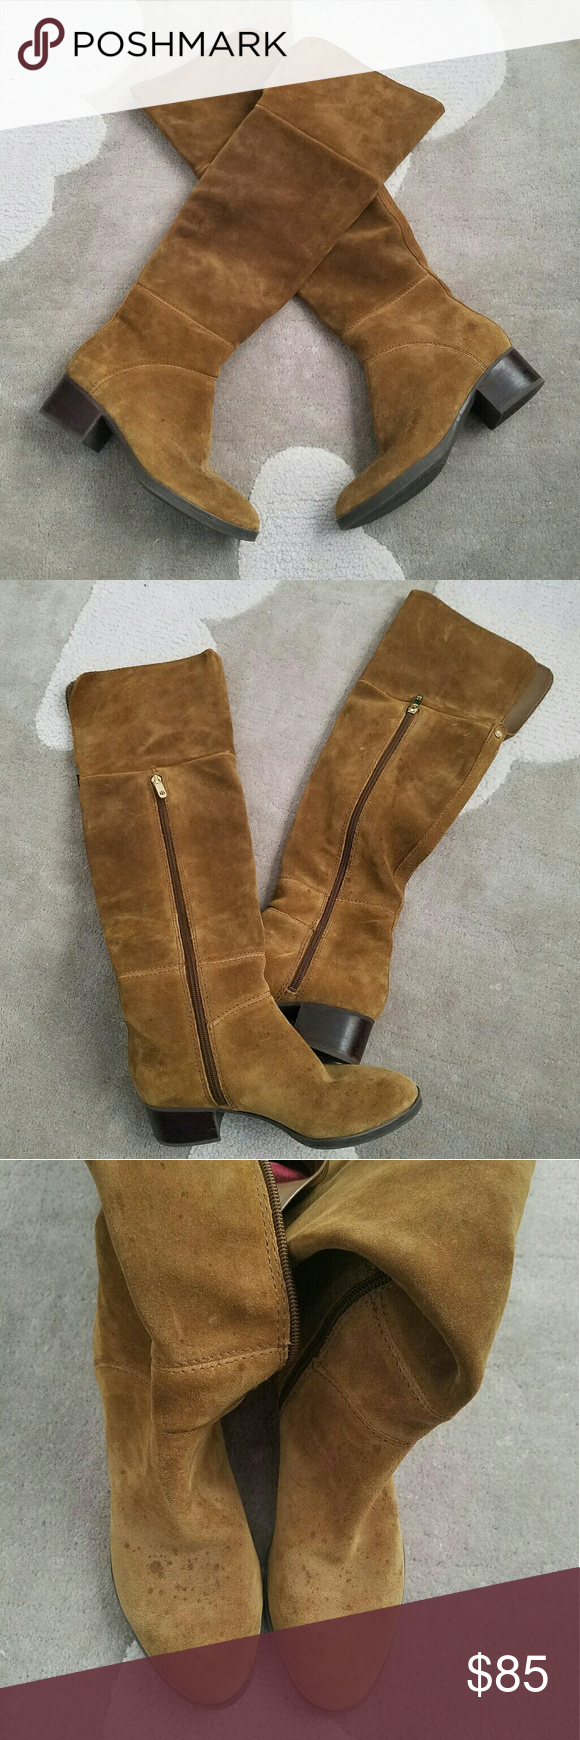 1dfb8620be3677 Tommy Hilfiger Gianna suede over the knee boots Color is brown but has a  hint of green yellow to it in person Almond toe Partial side zip closure  Top flat ...